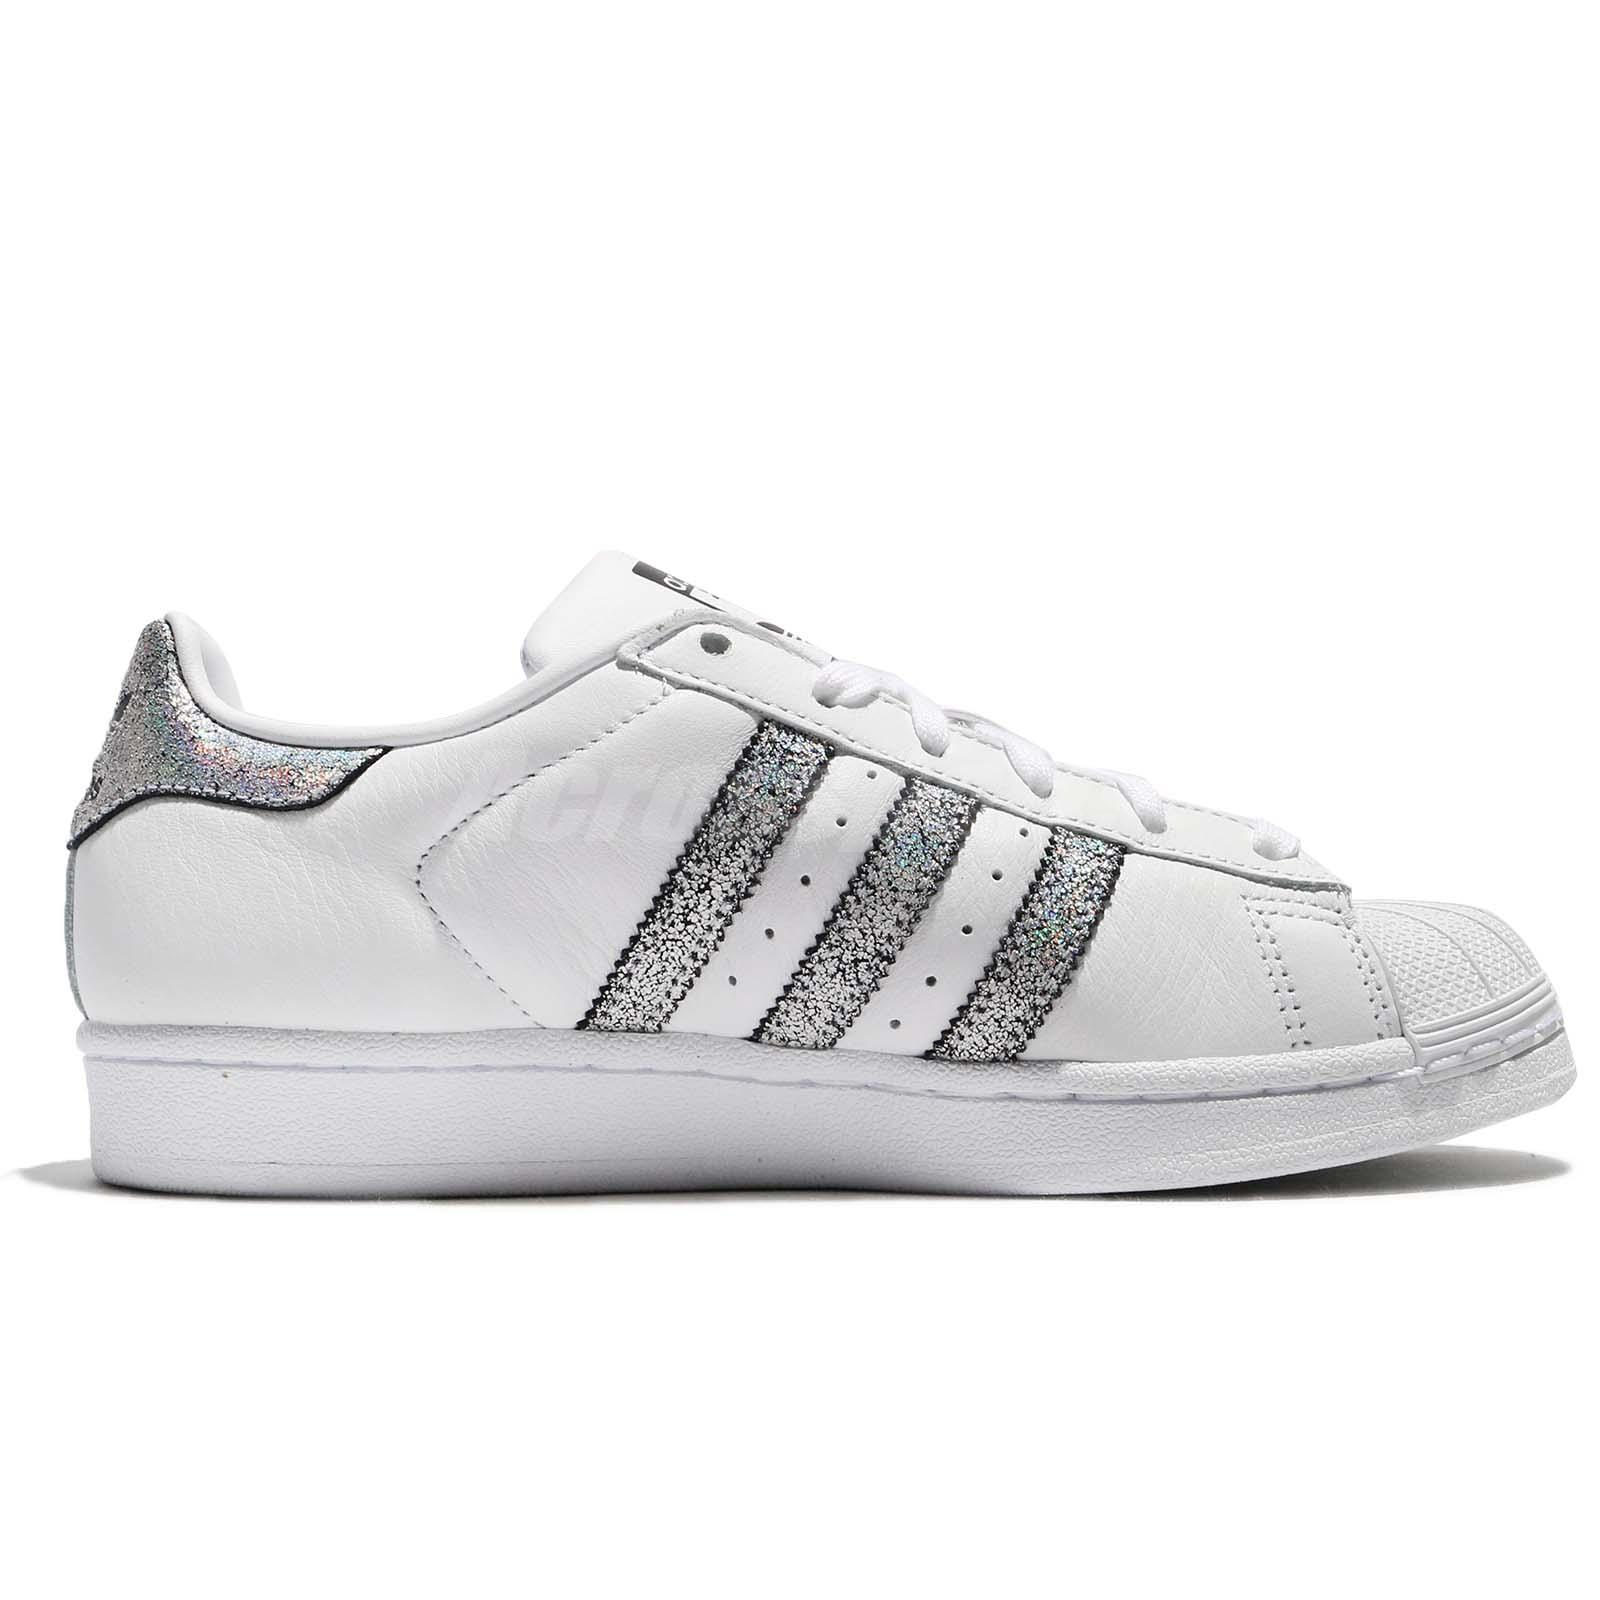 check out 3811e 332b1 Details about adidas Originals Superstar W White Silver Black Women Shoes  Sneakers CG5455